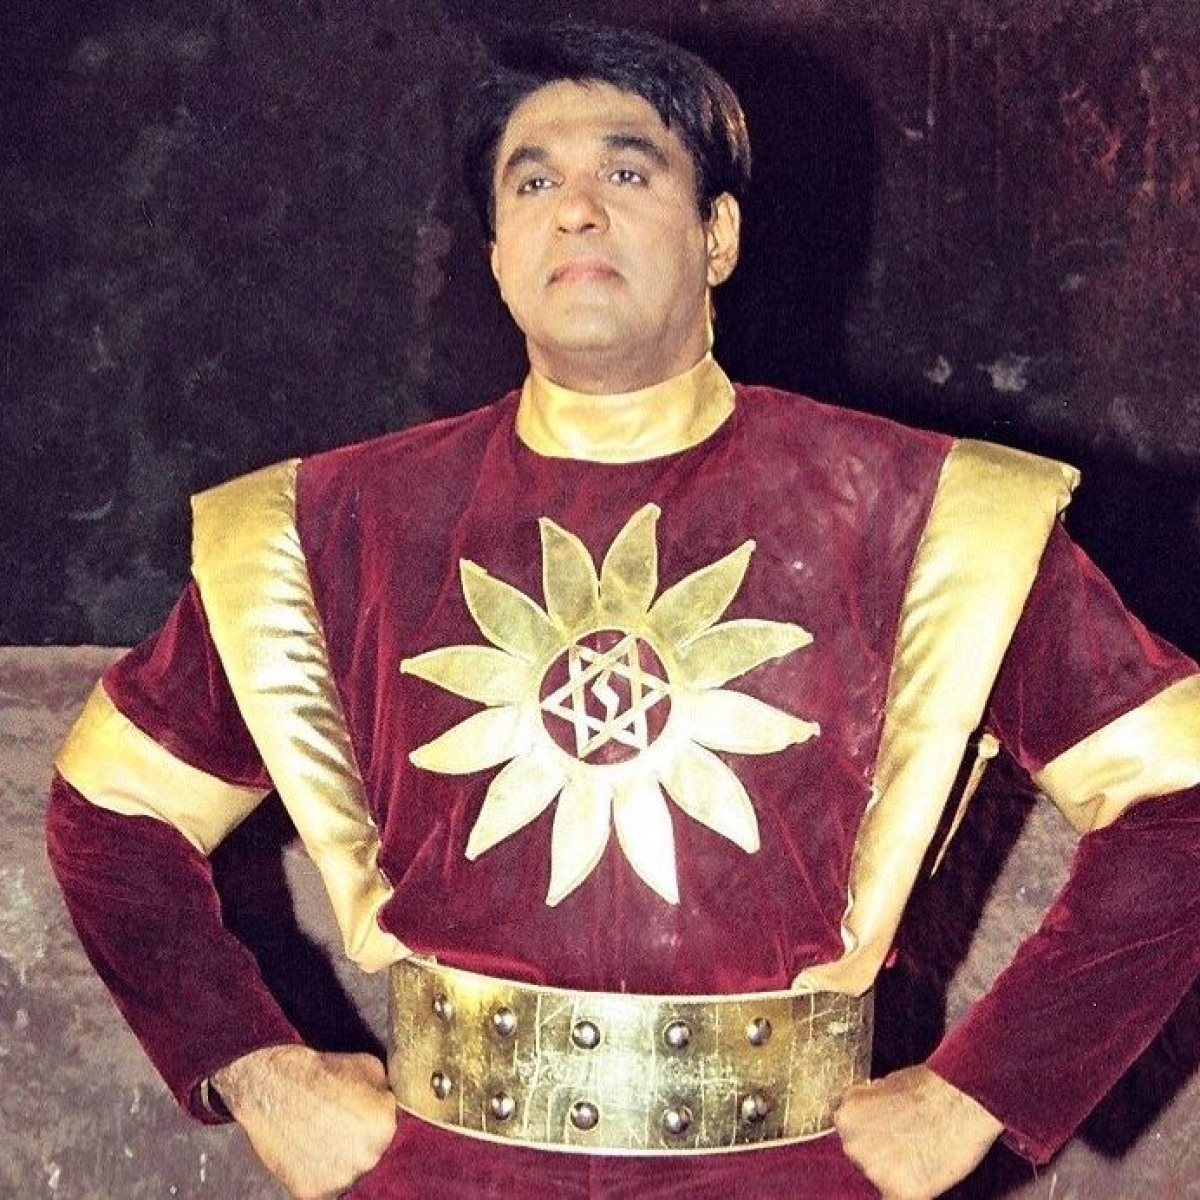 'Shaktimaan' actor Mukesh Khanna quashes death rumours, says he's 'perfectly alright'